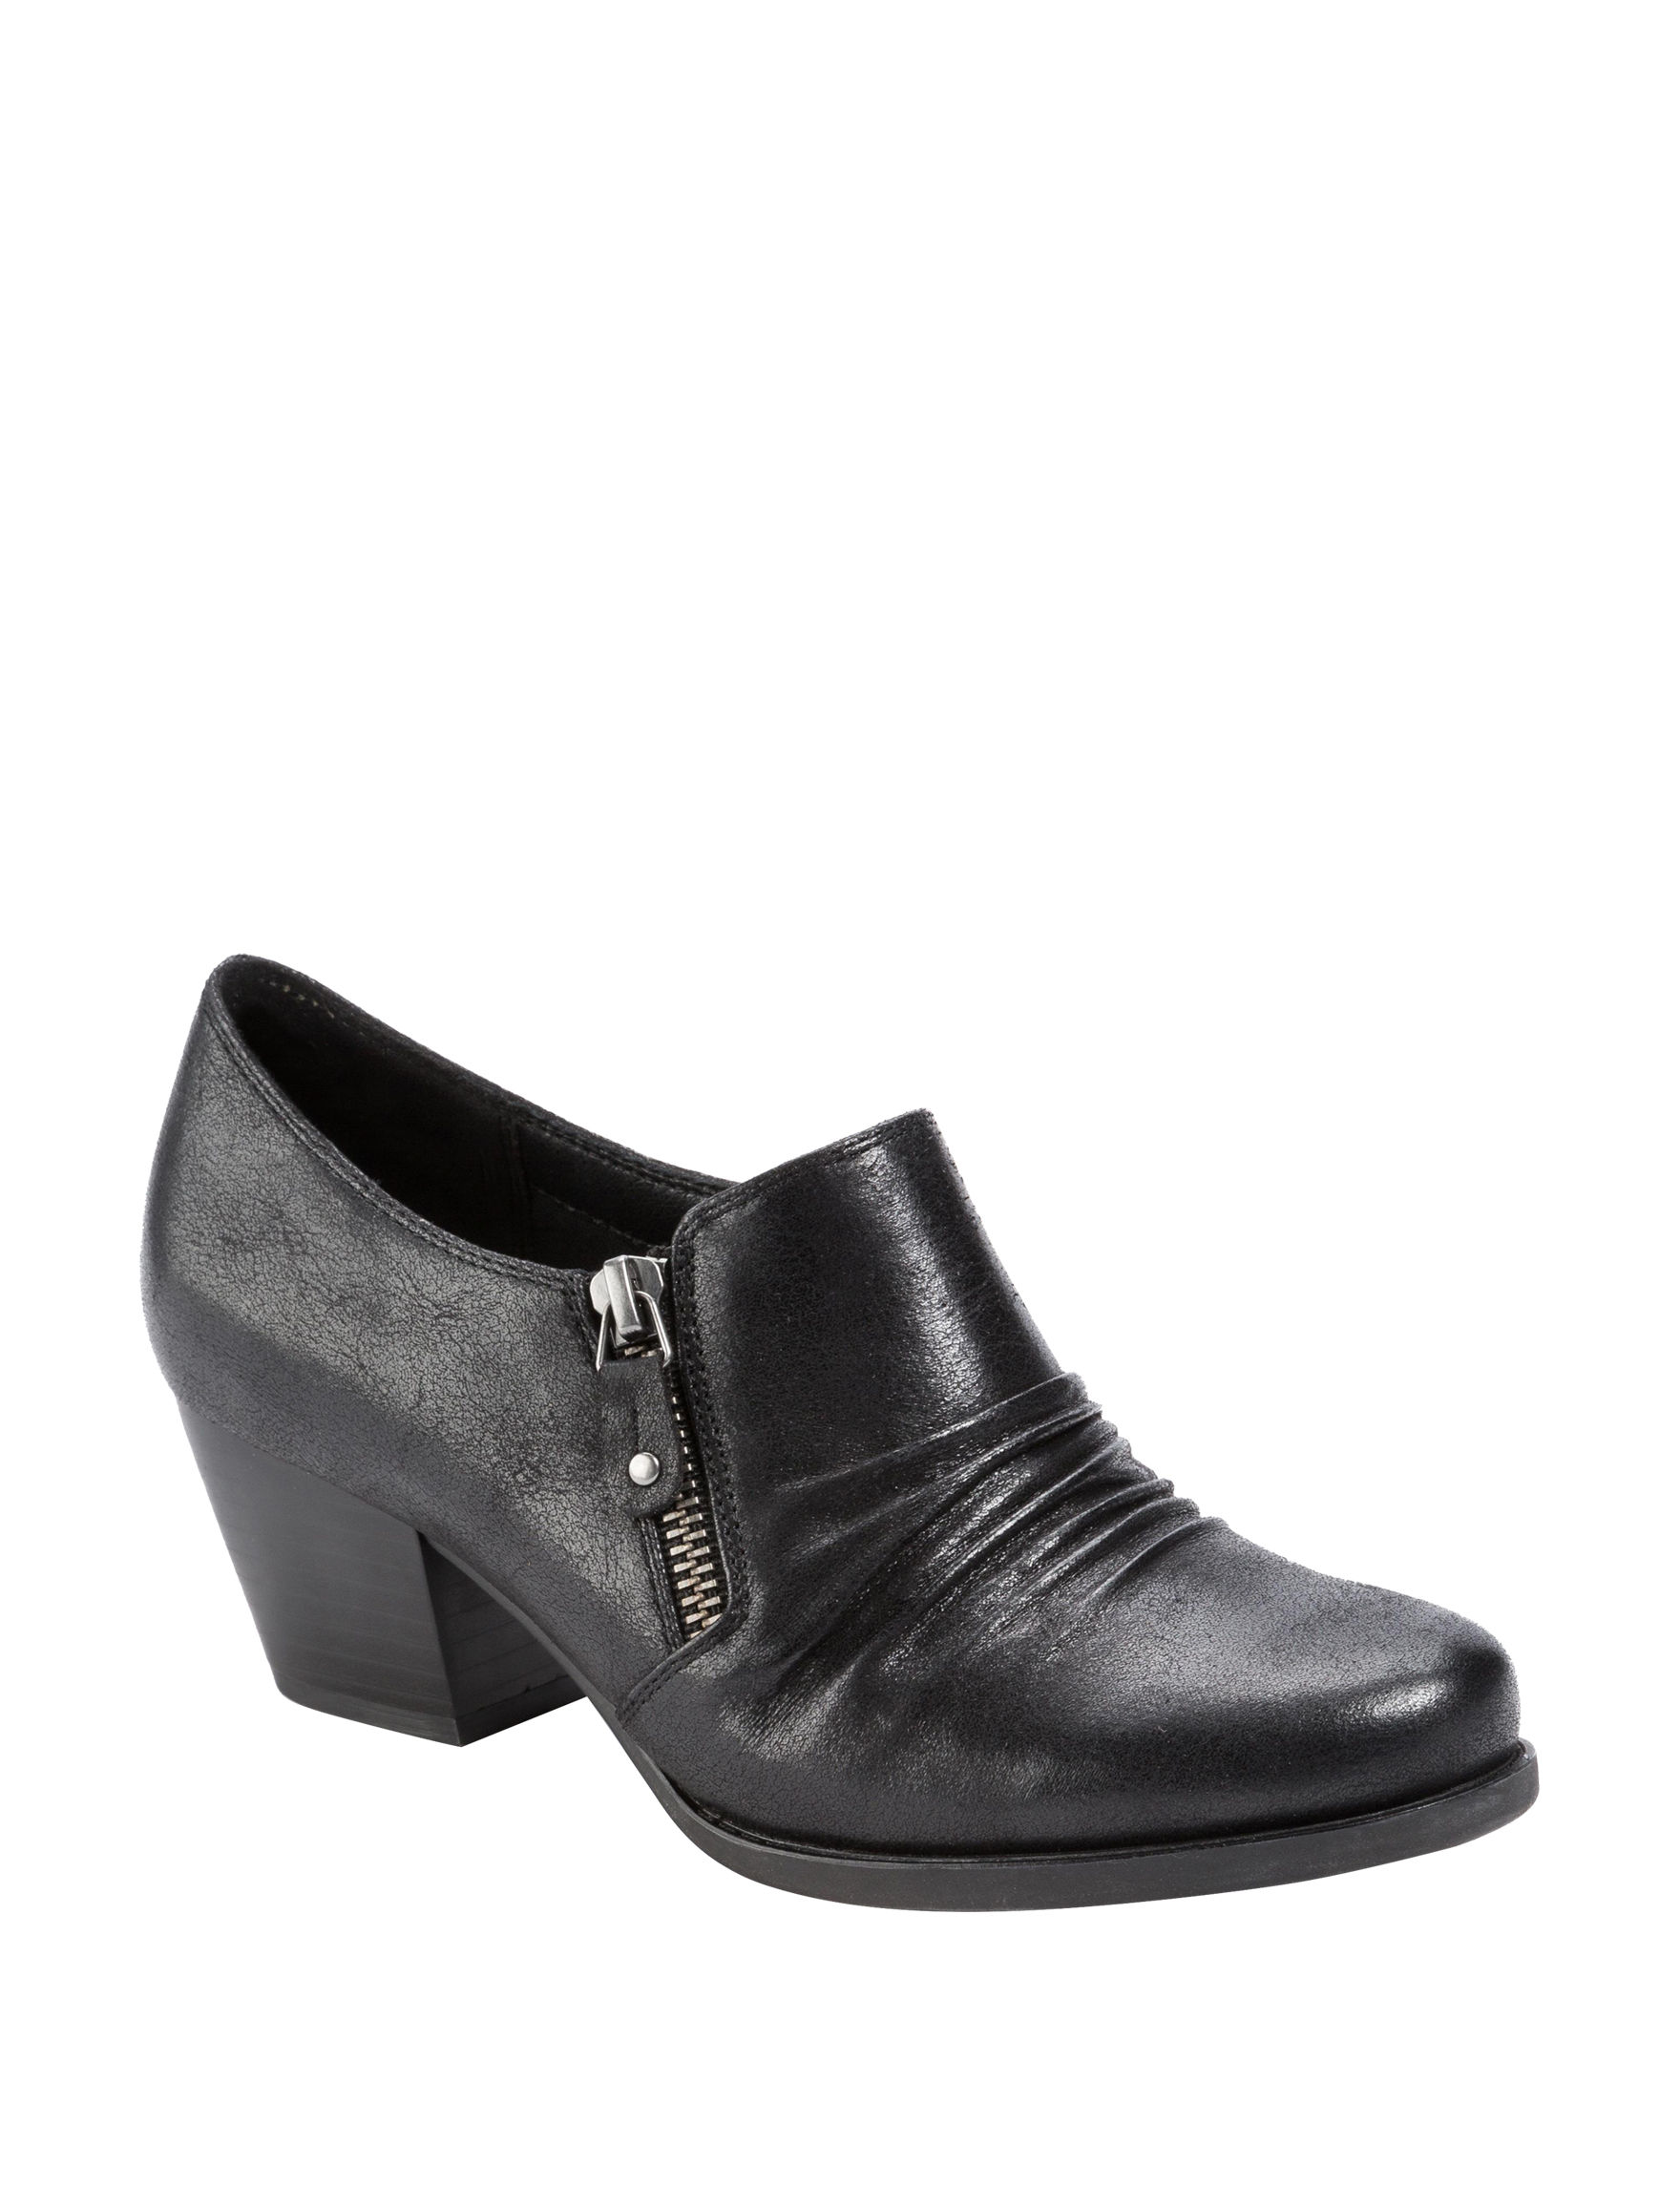 Wear. Ever. Black Ankle Boots & Booties